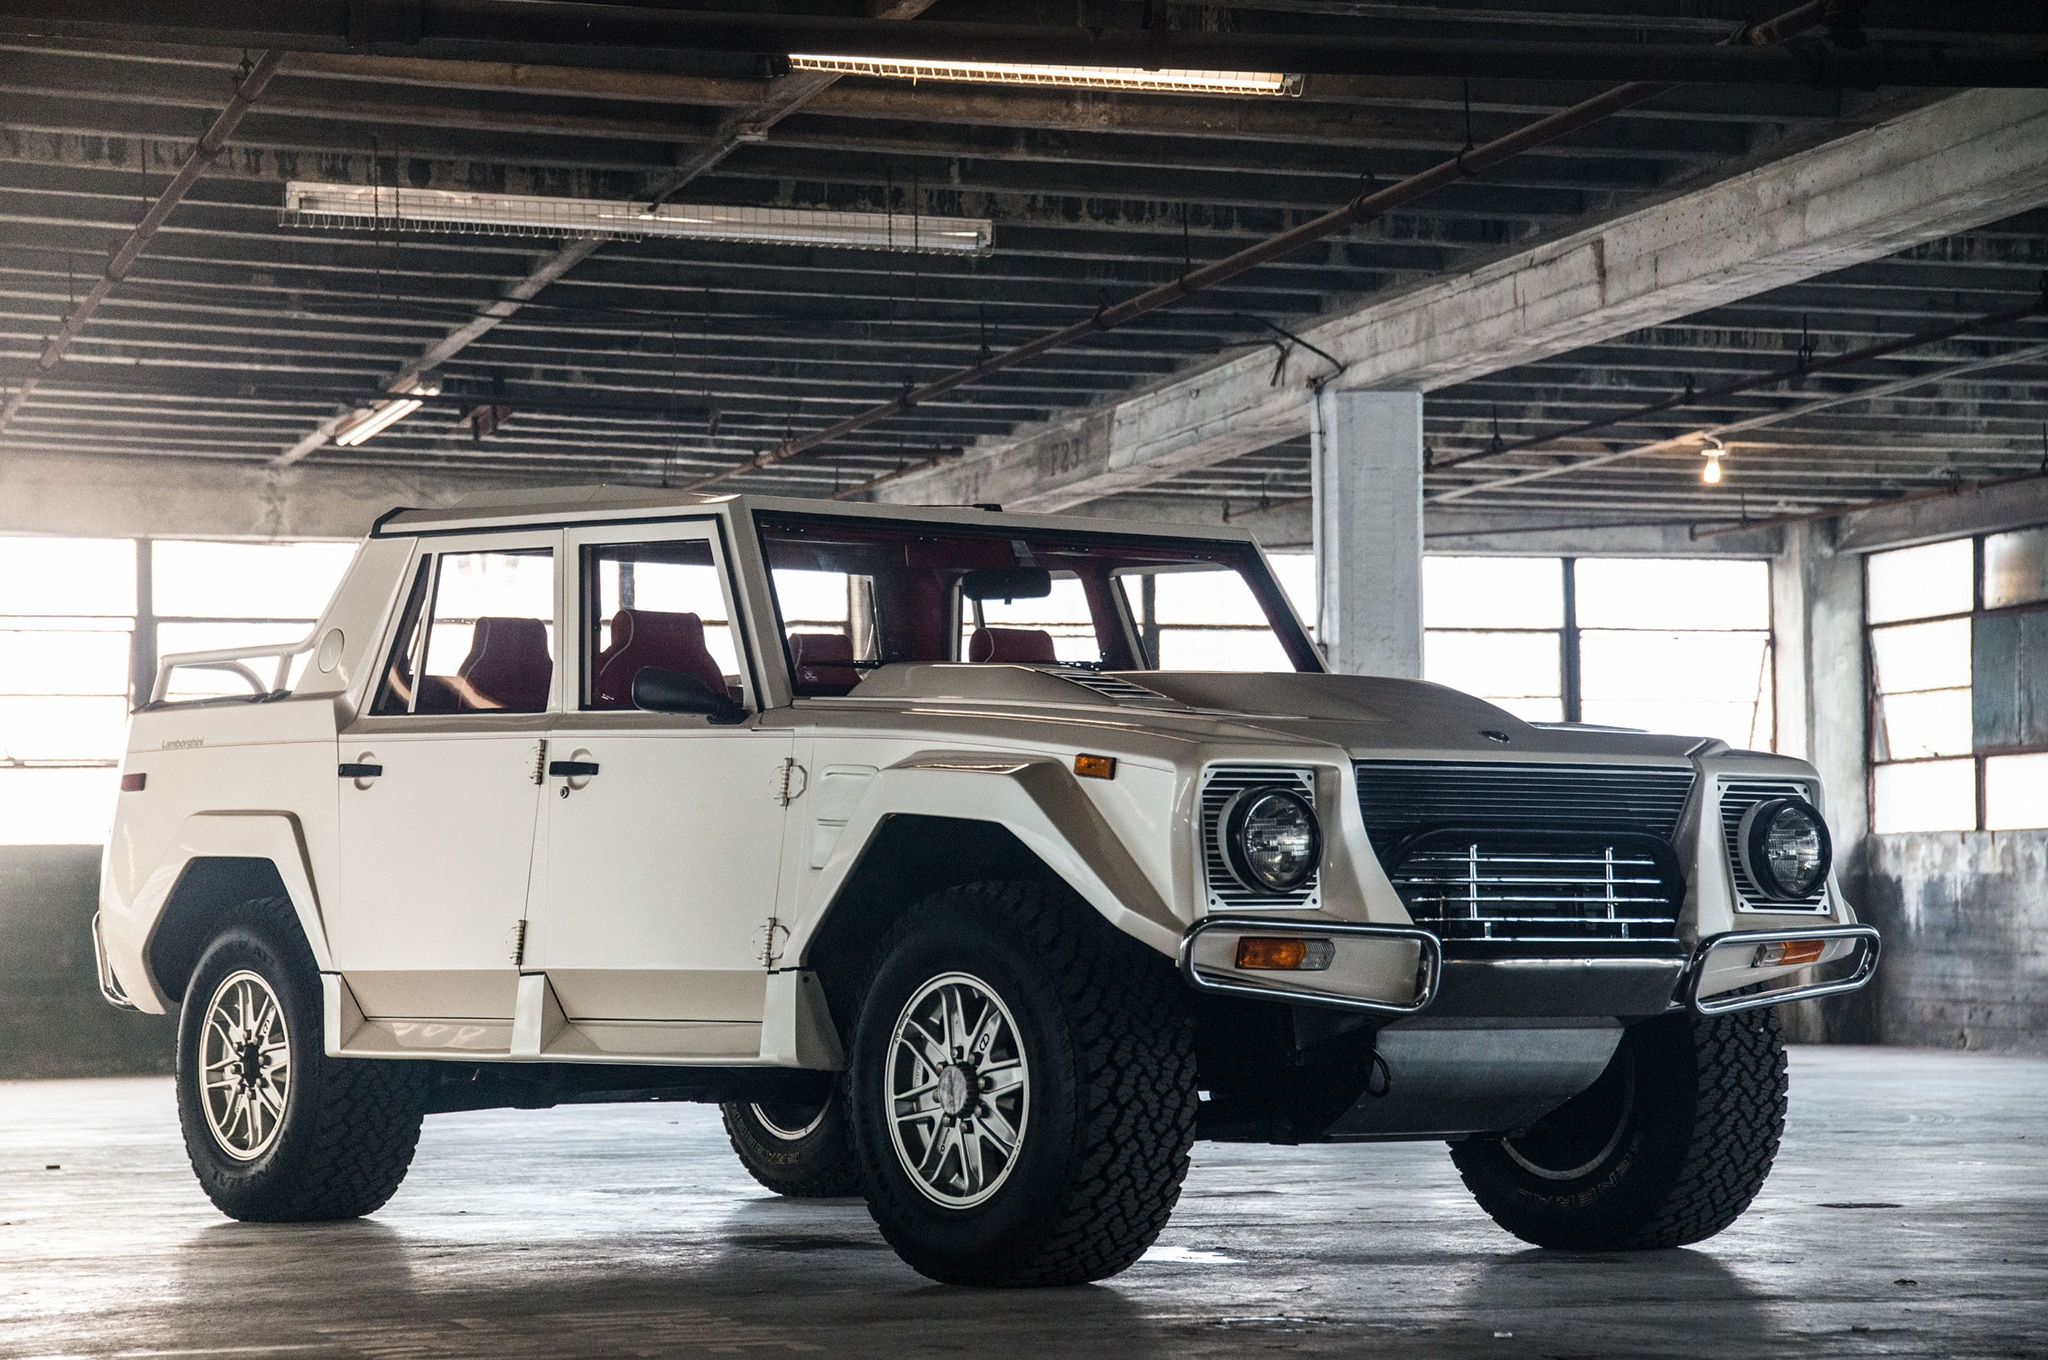 1990 Lamborghini LM002 Petrolicious Just Listed Front Three Quarters 2 Copy